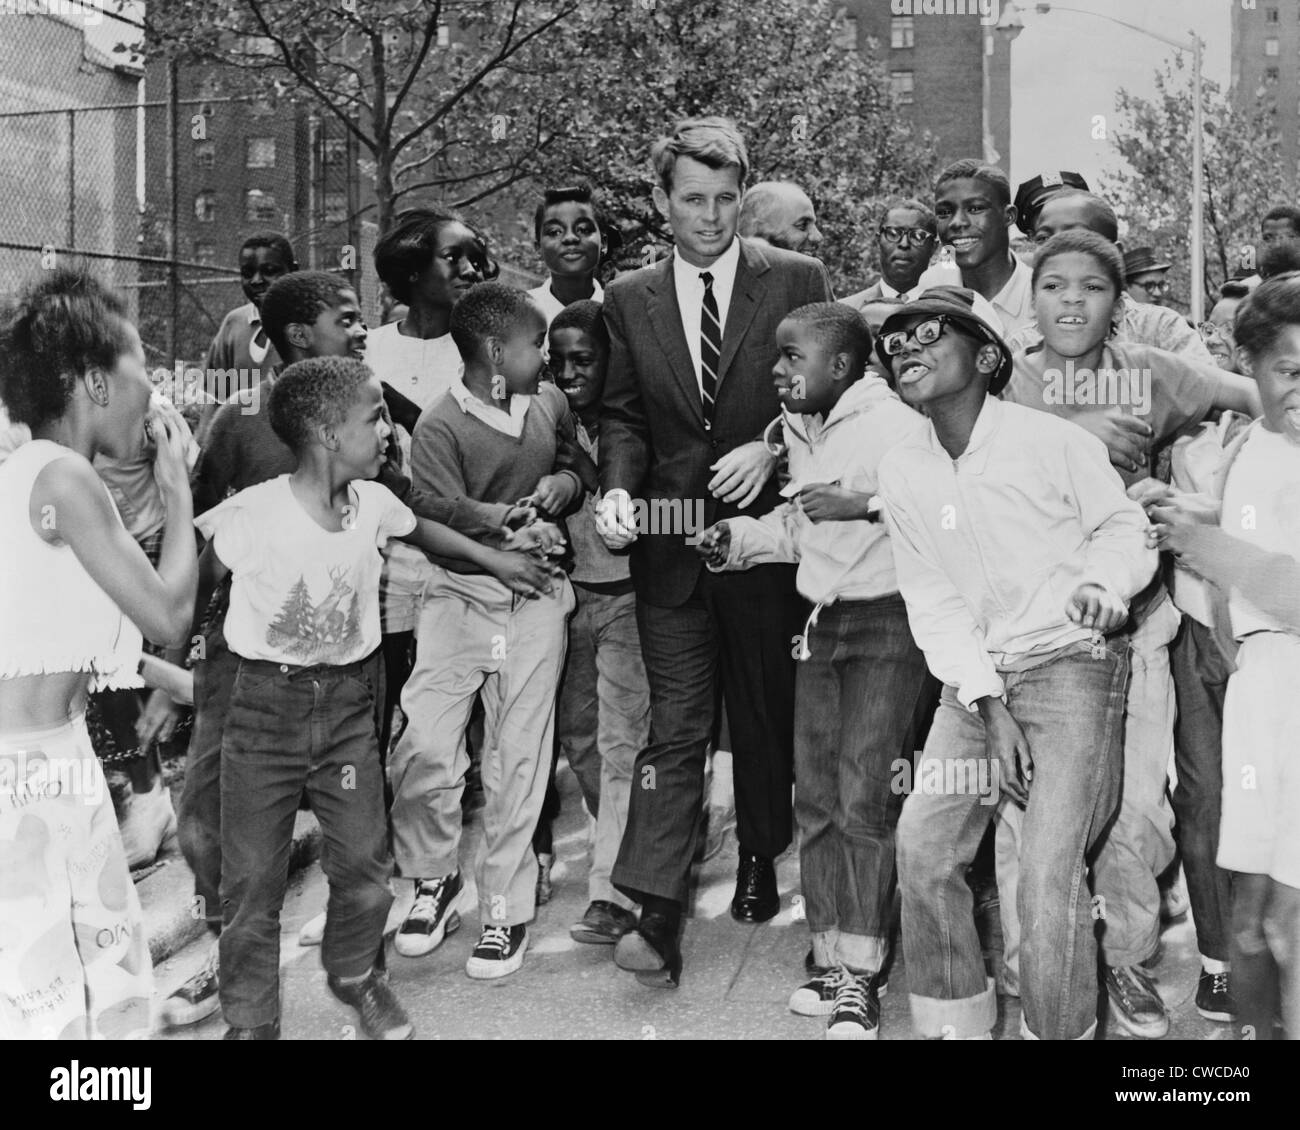 Attorney General Robert Kennedy surrounded by African American children. He was visiting a summer reading program - Stock Image